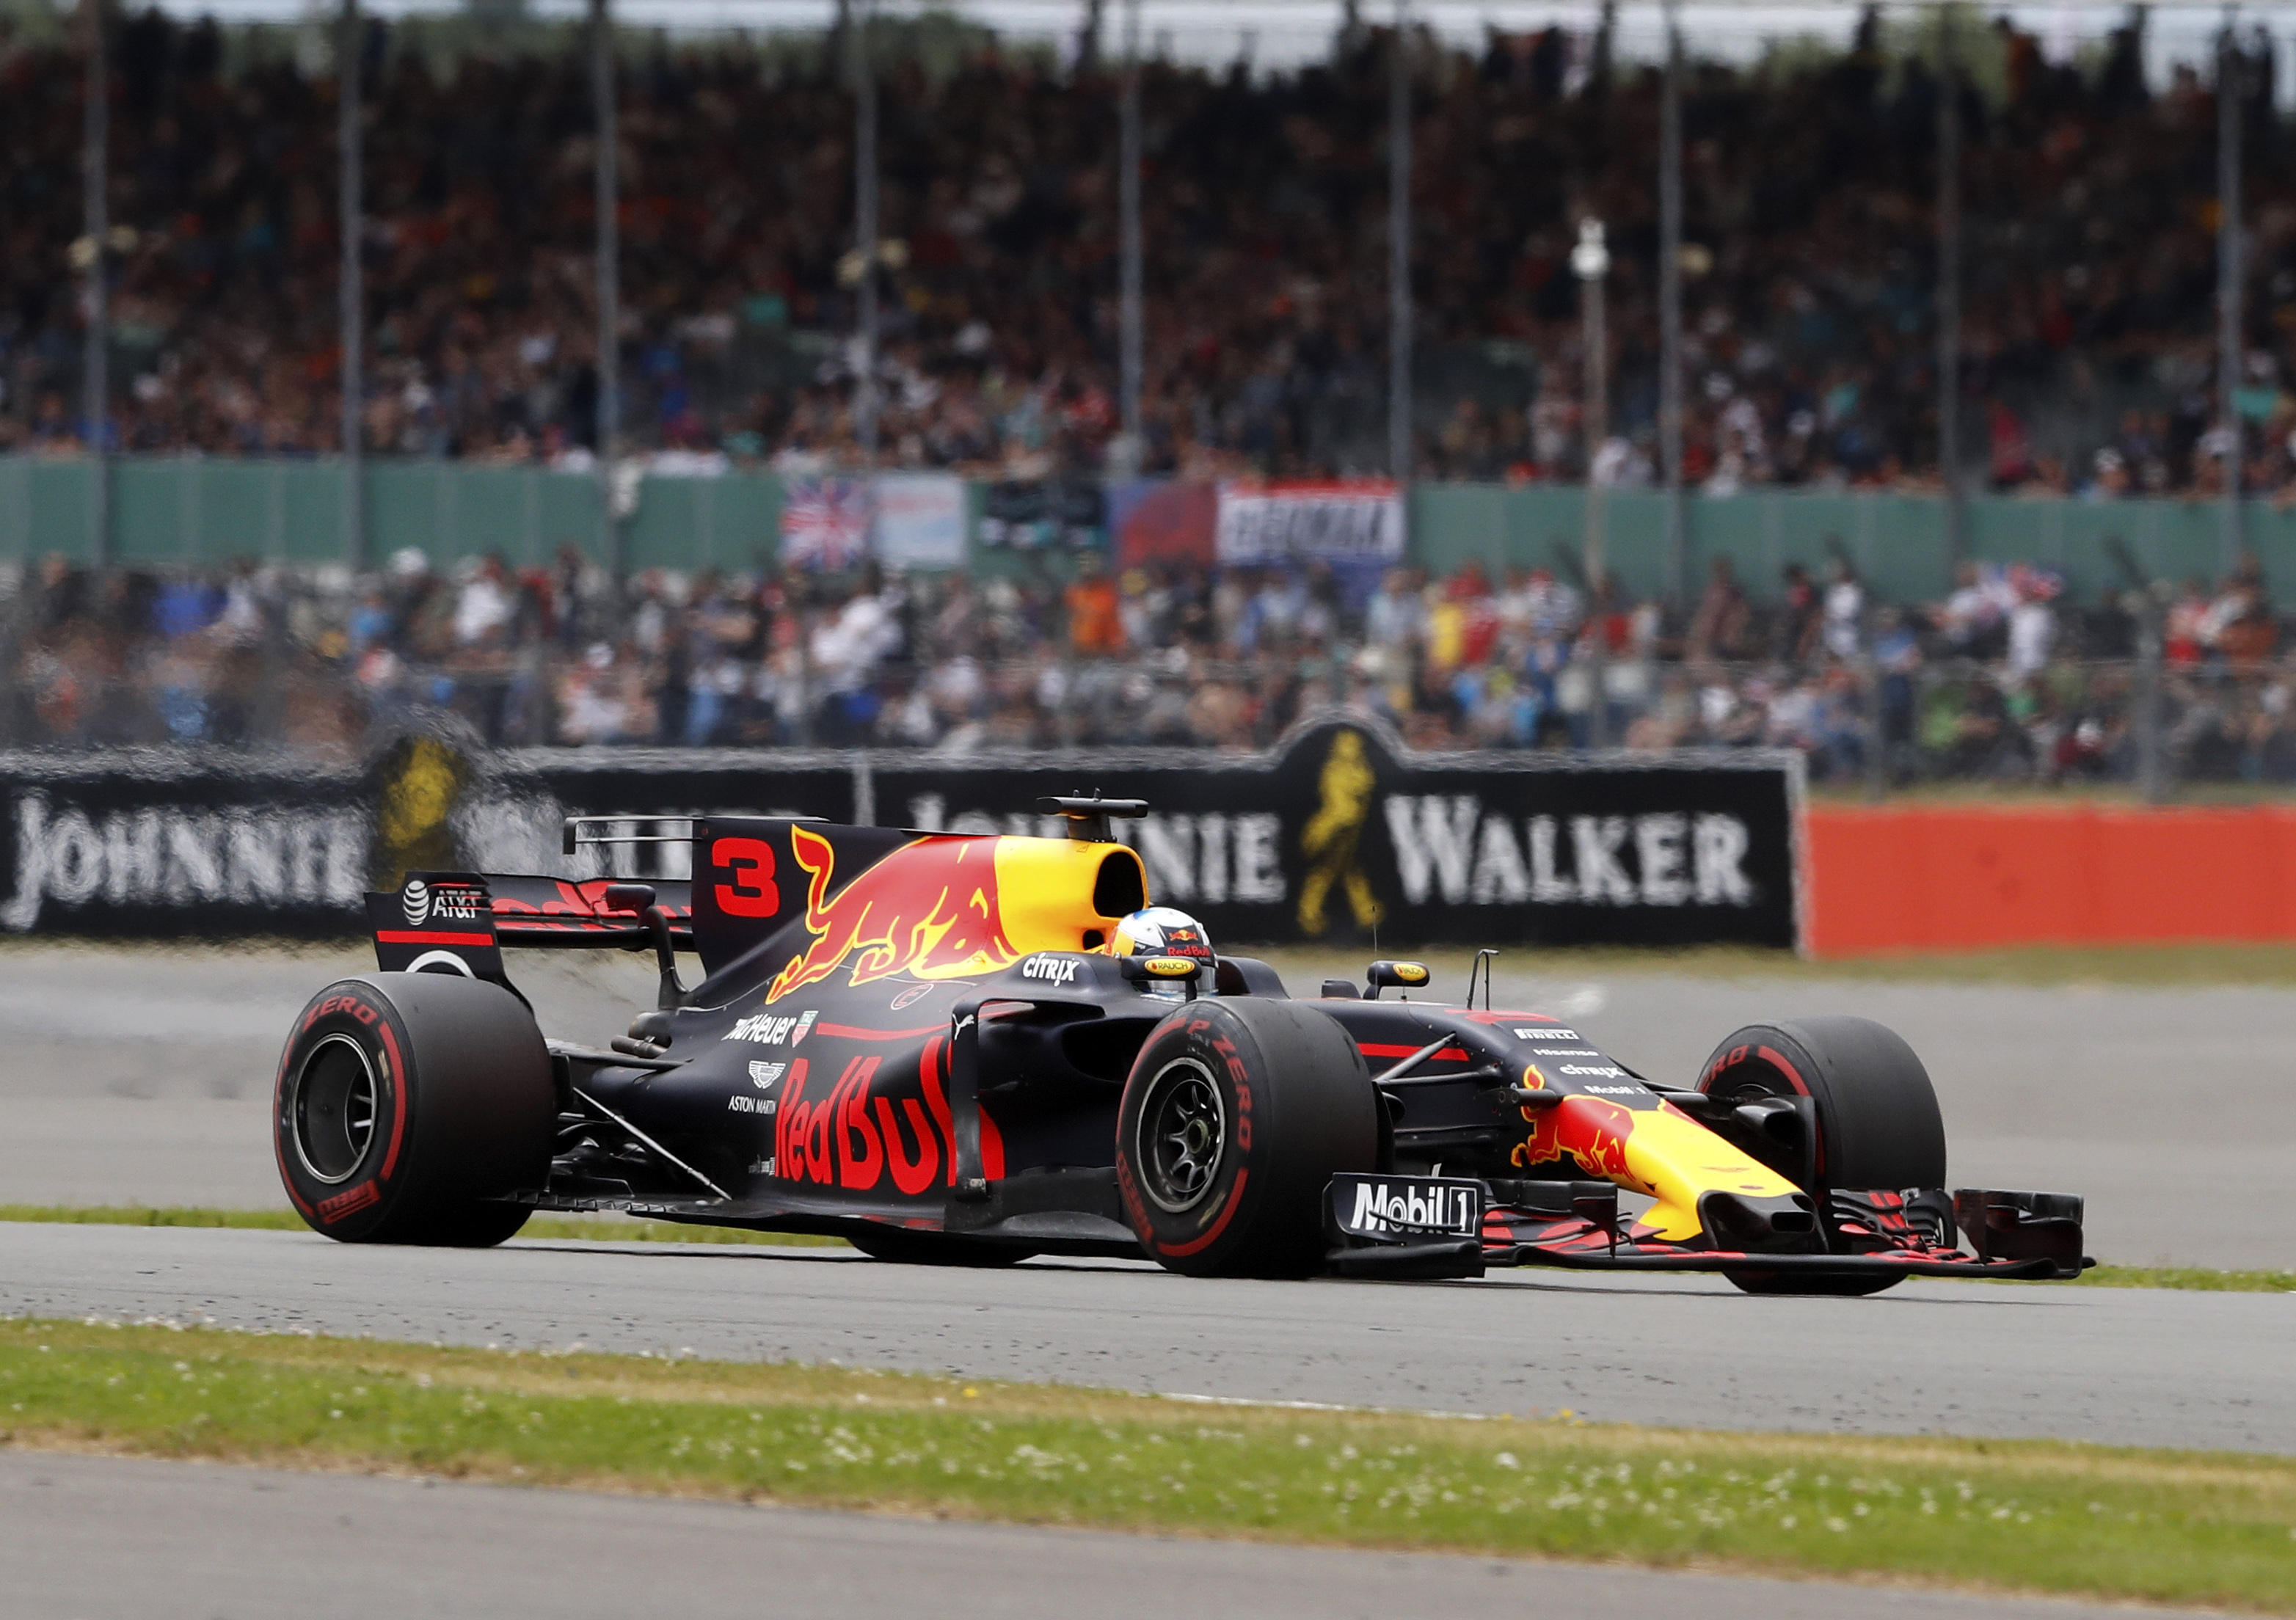 Red Bull driver Daniel Ricciardo of Australia steers his car during the British Formula One Grand Prix at the Silverstone racetrack in Silverstone, England, Sunday, July 16, 2017. (AP Photo/Frank Augstein)